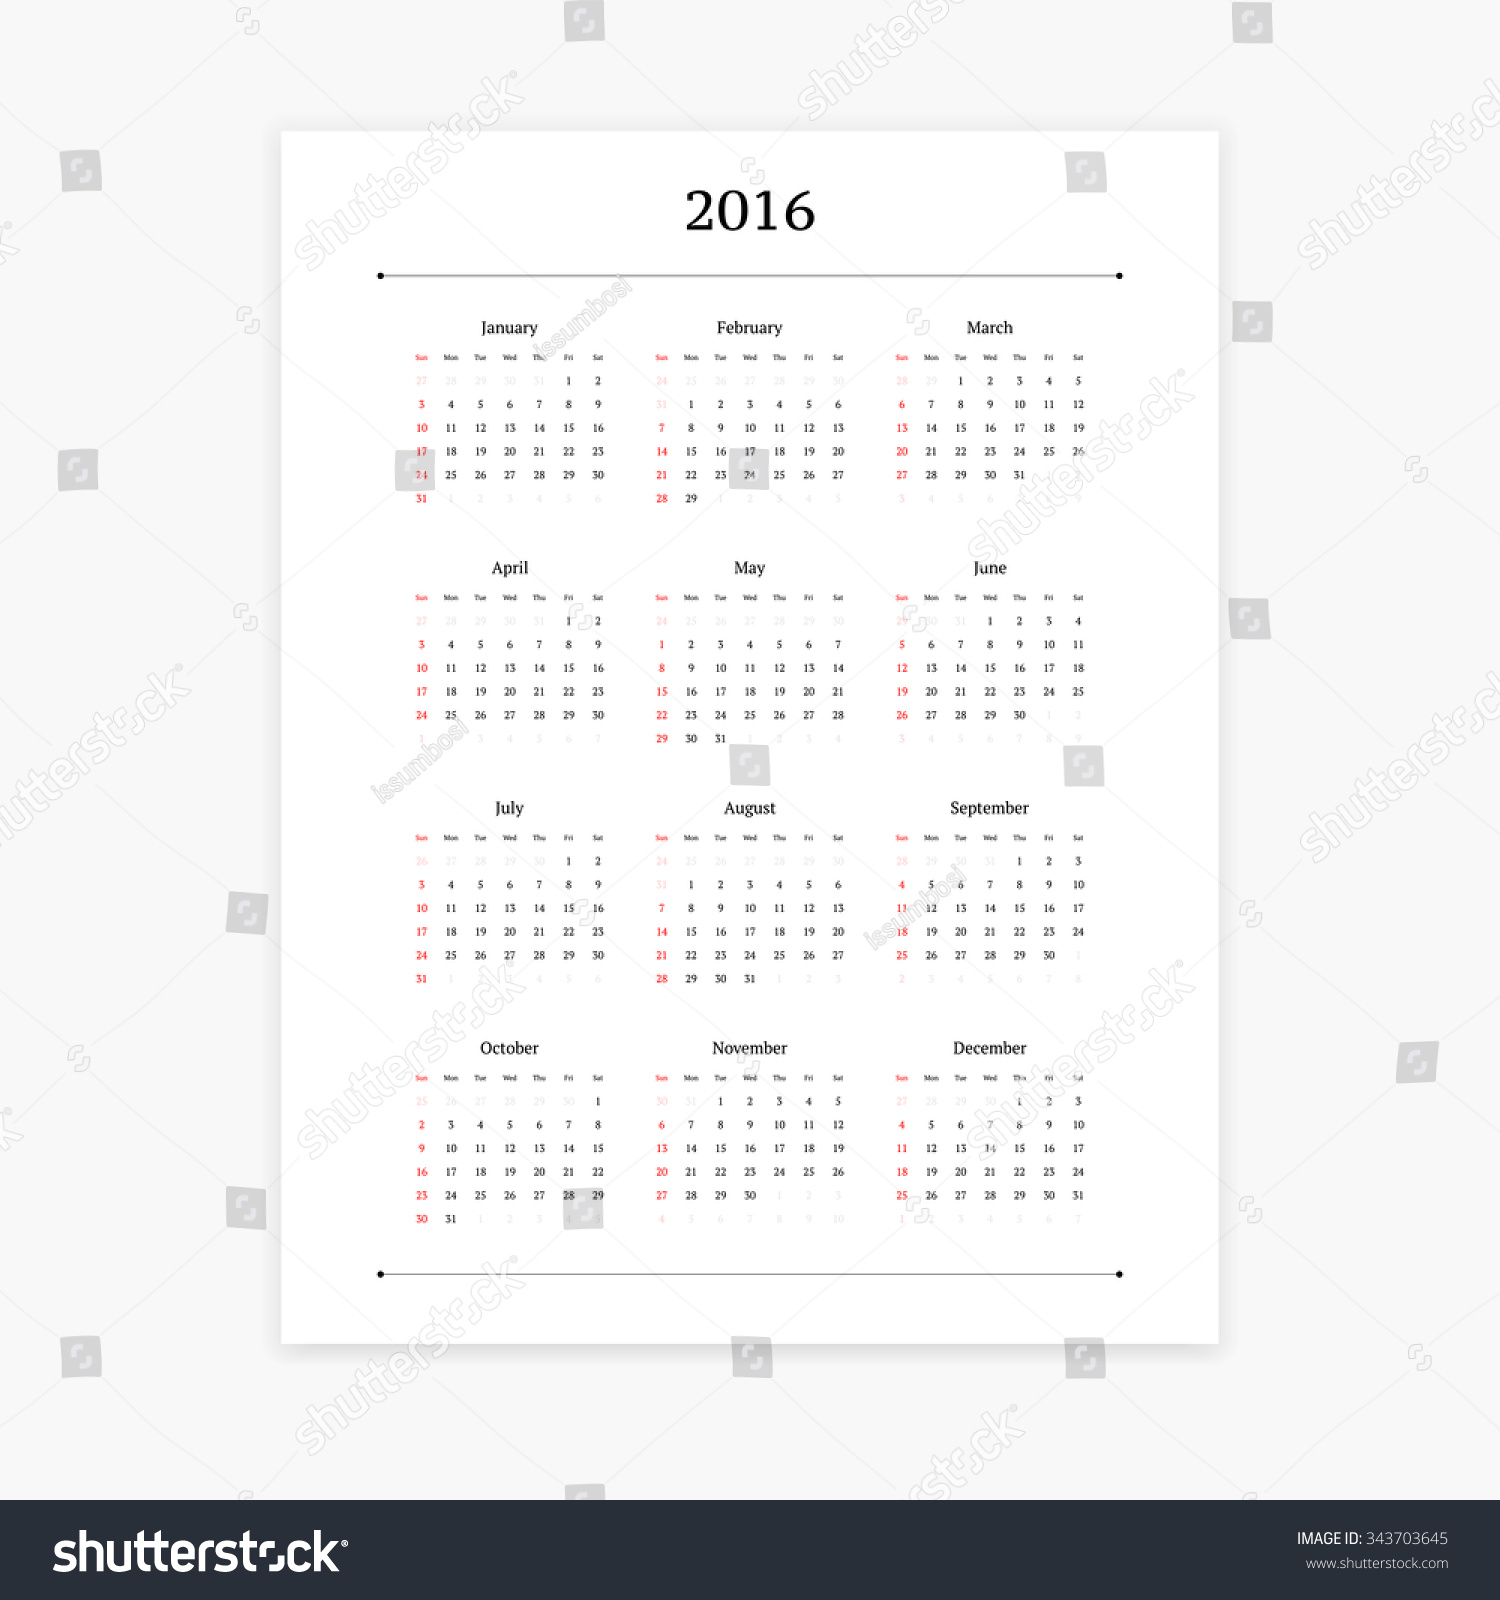 Minimalist Calendar Template : Simple clean calendar vector template stock